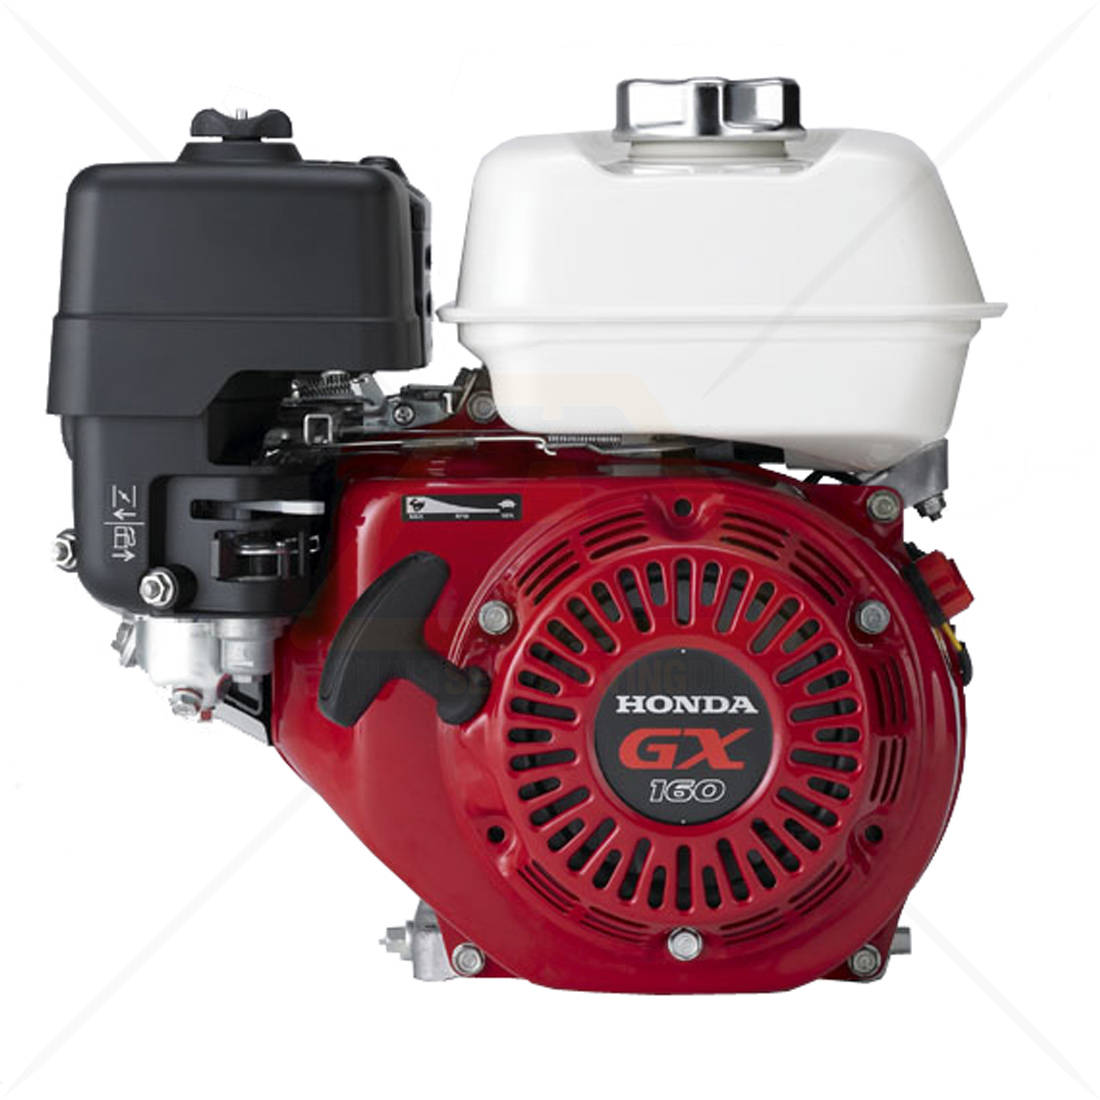 Honda Gx160 5 5 Hp Industrial Engine For Sale